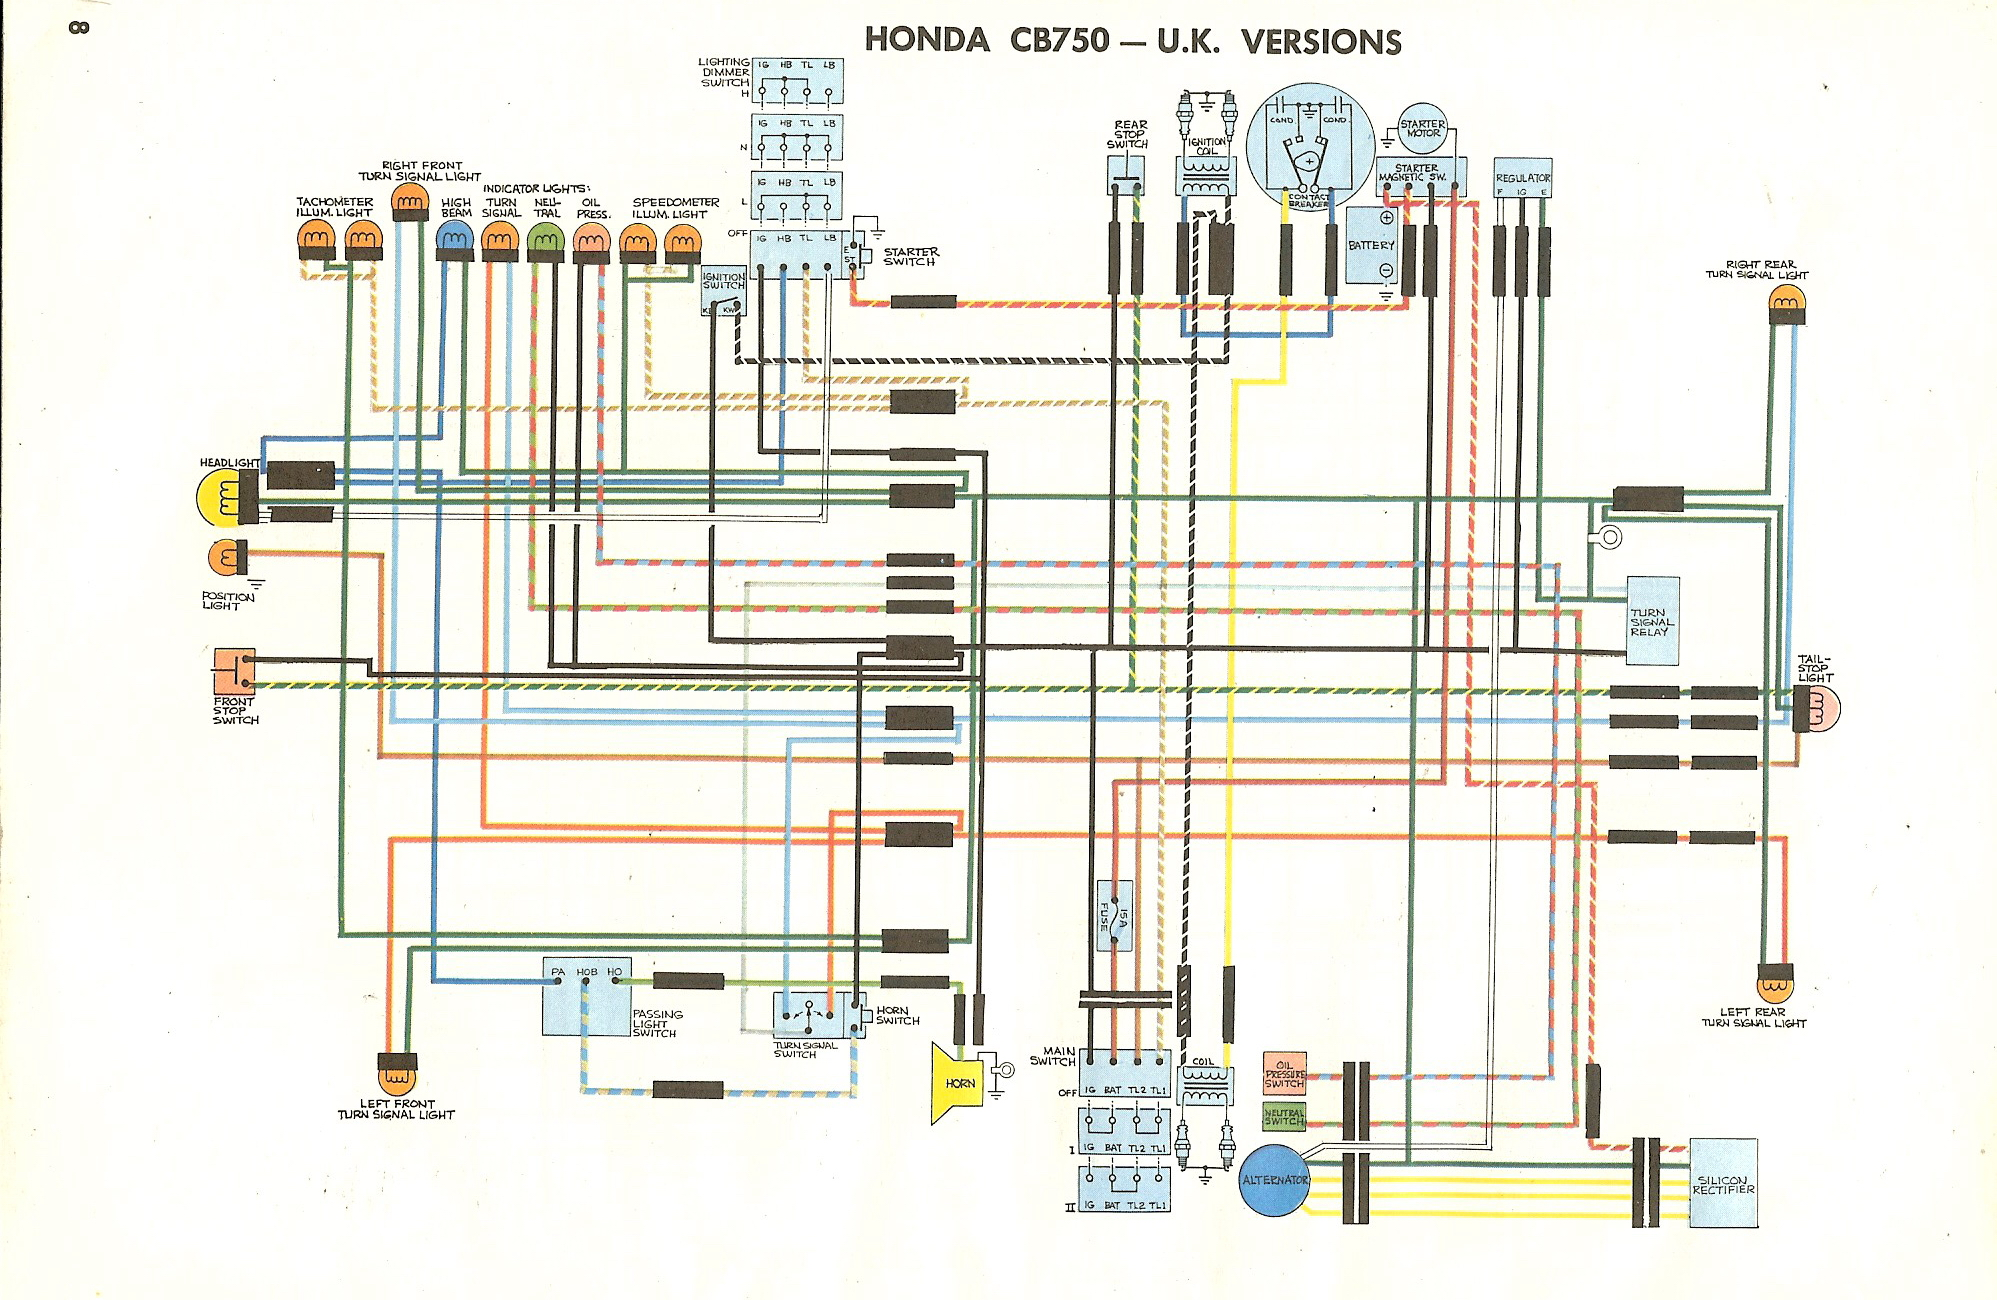 CB750K Wiring Diagram Honda on